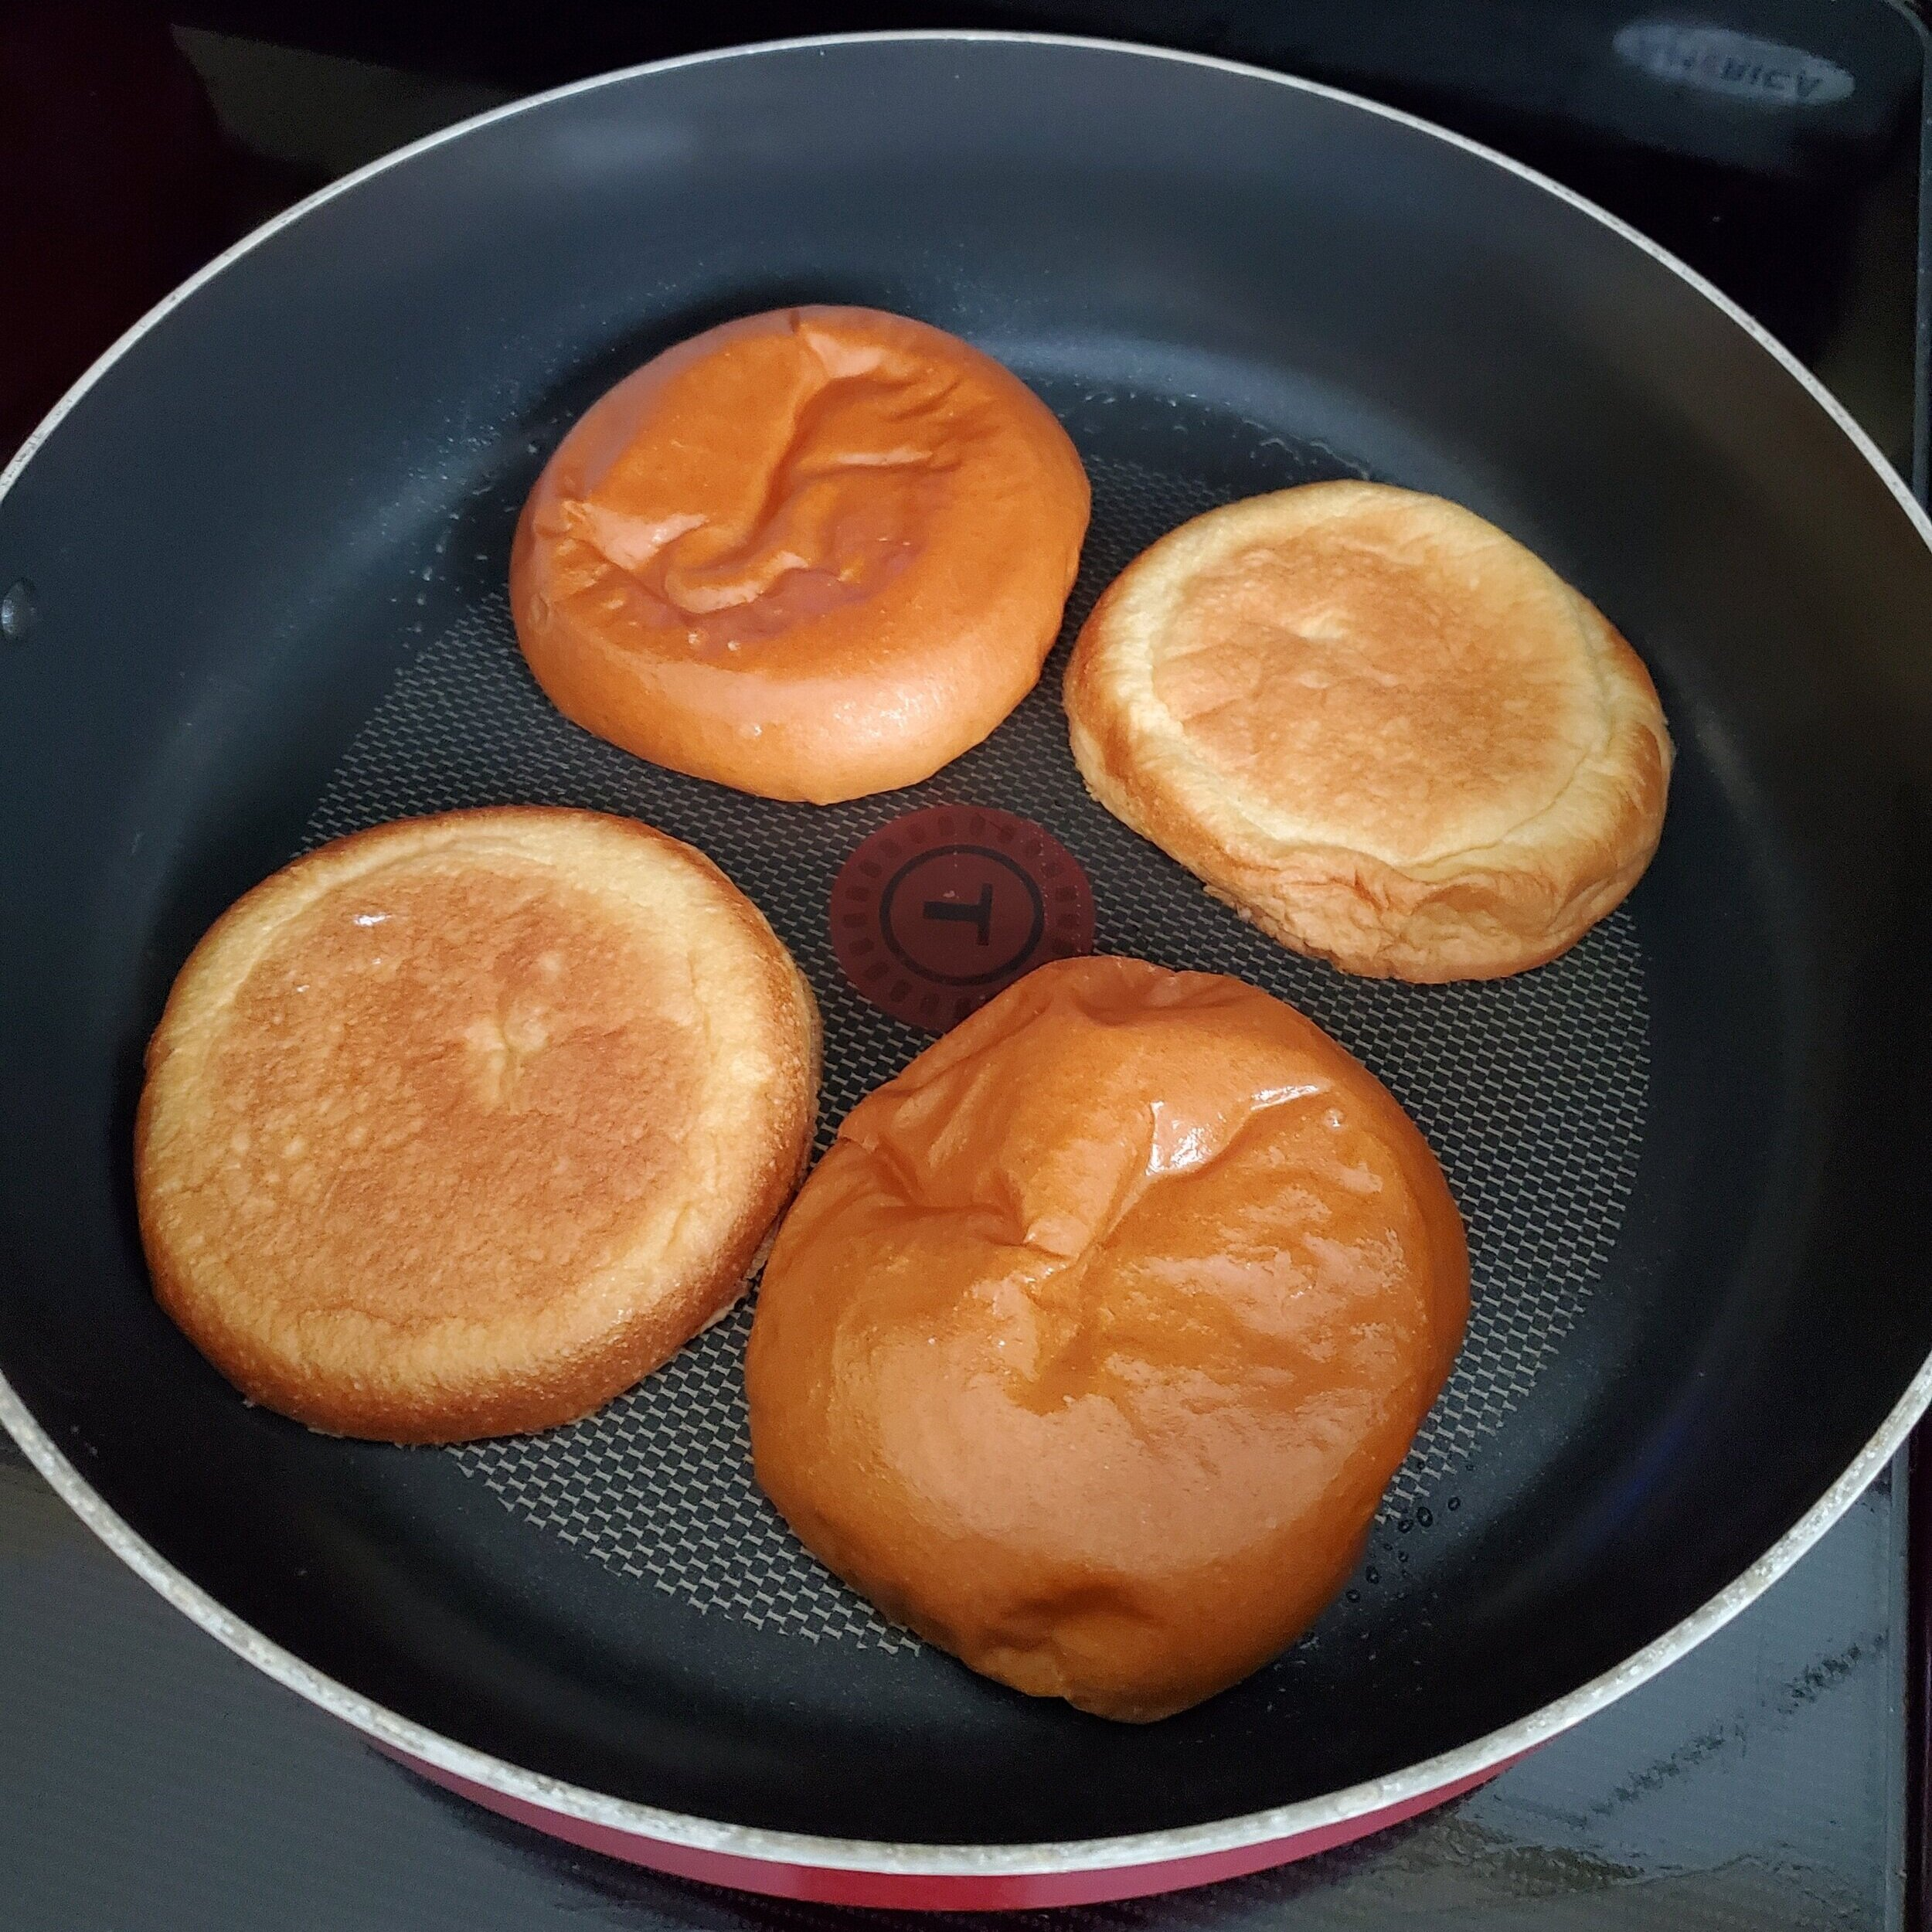 butter and toast buns